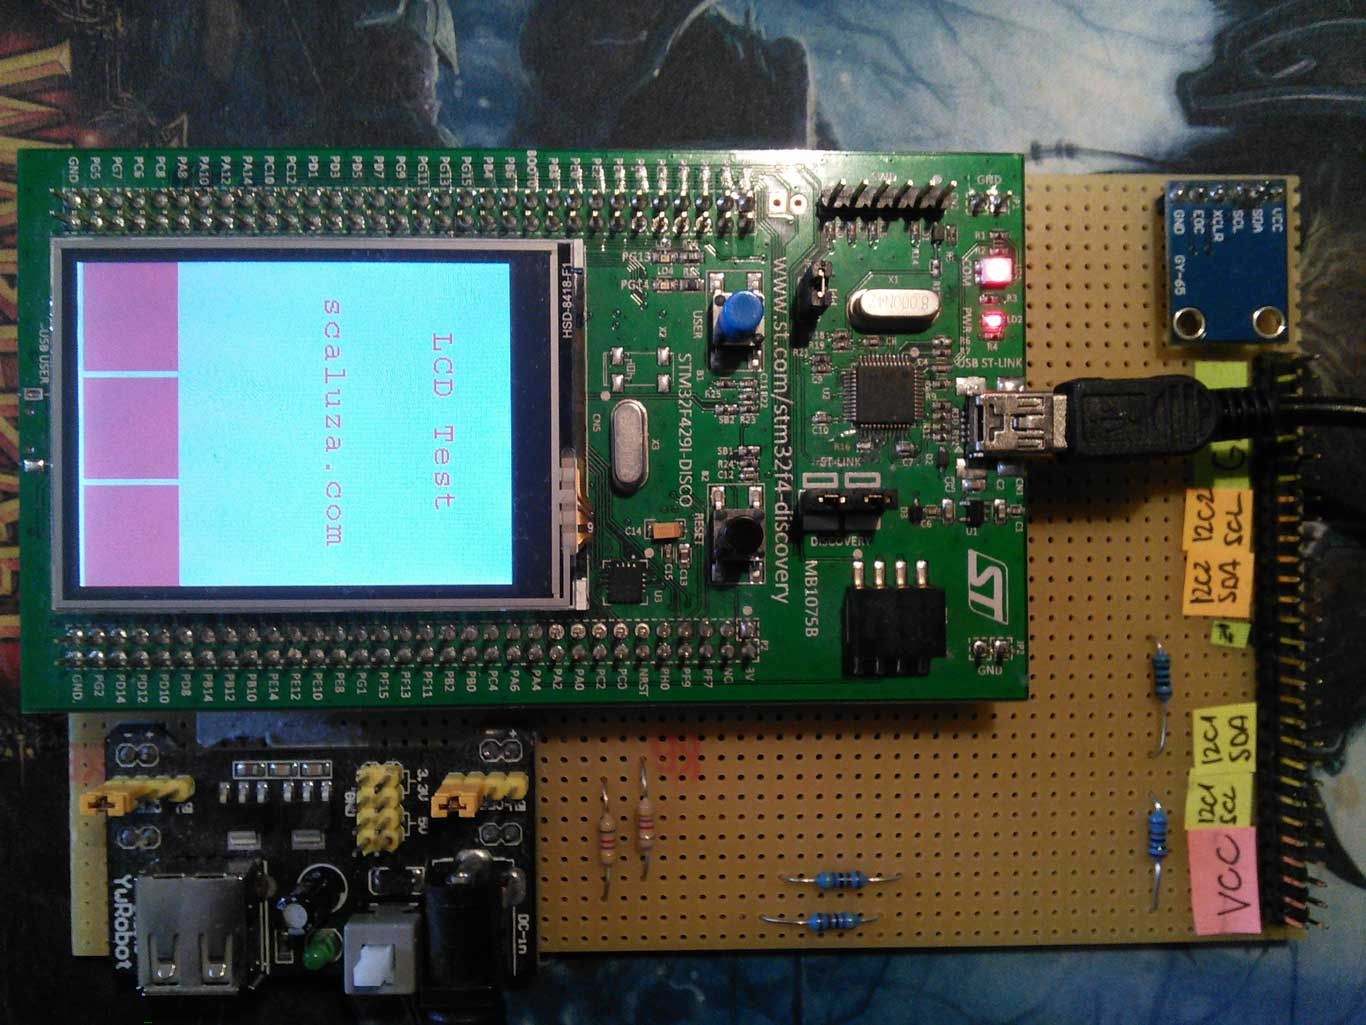 Initialization of ILI9341 TFT LCD screen with STMPE811 resistive